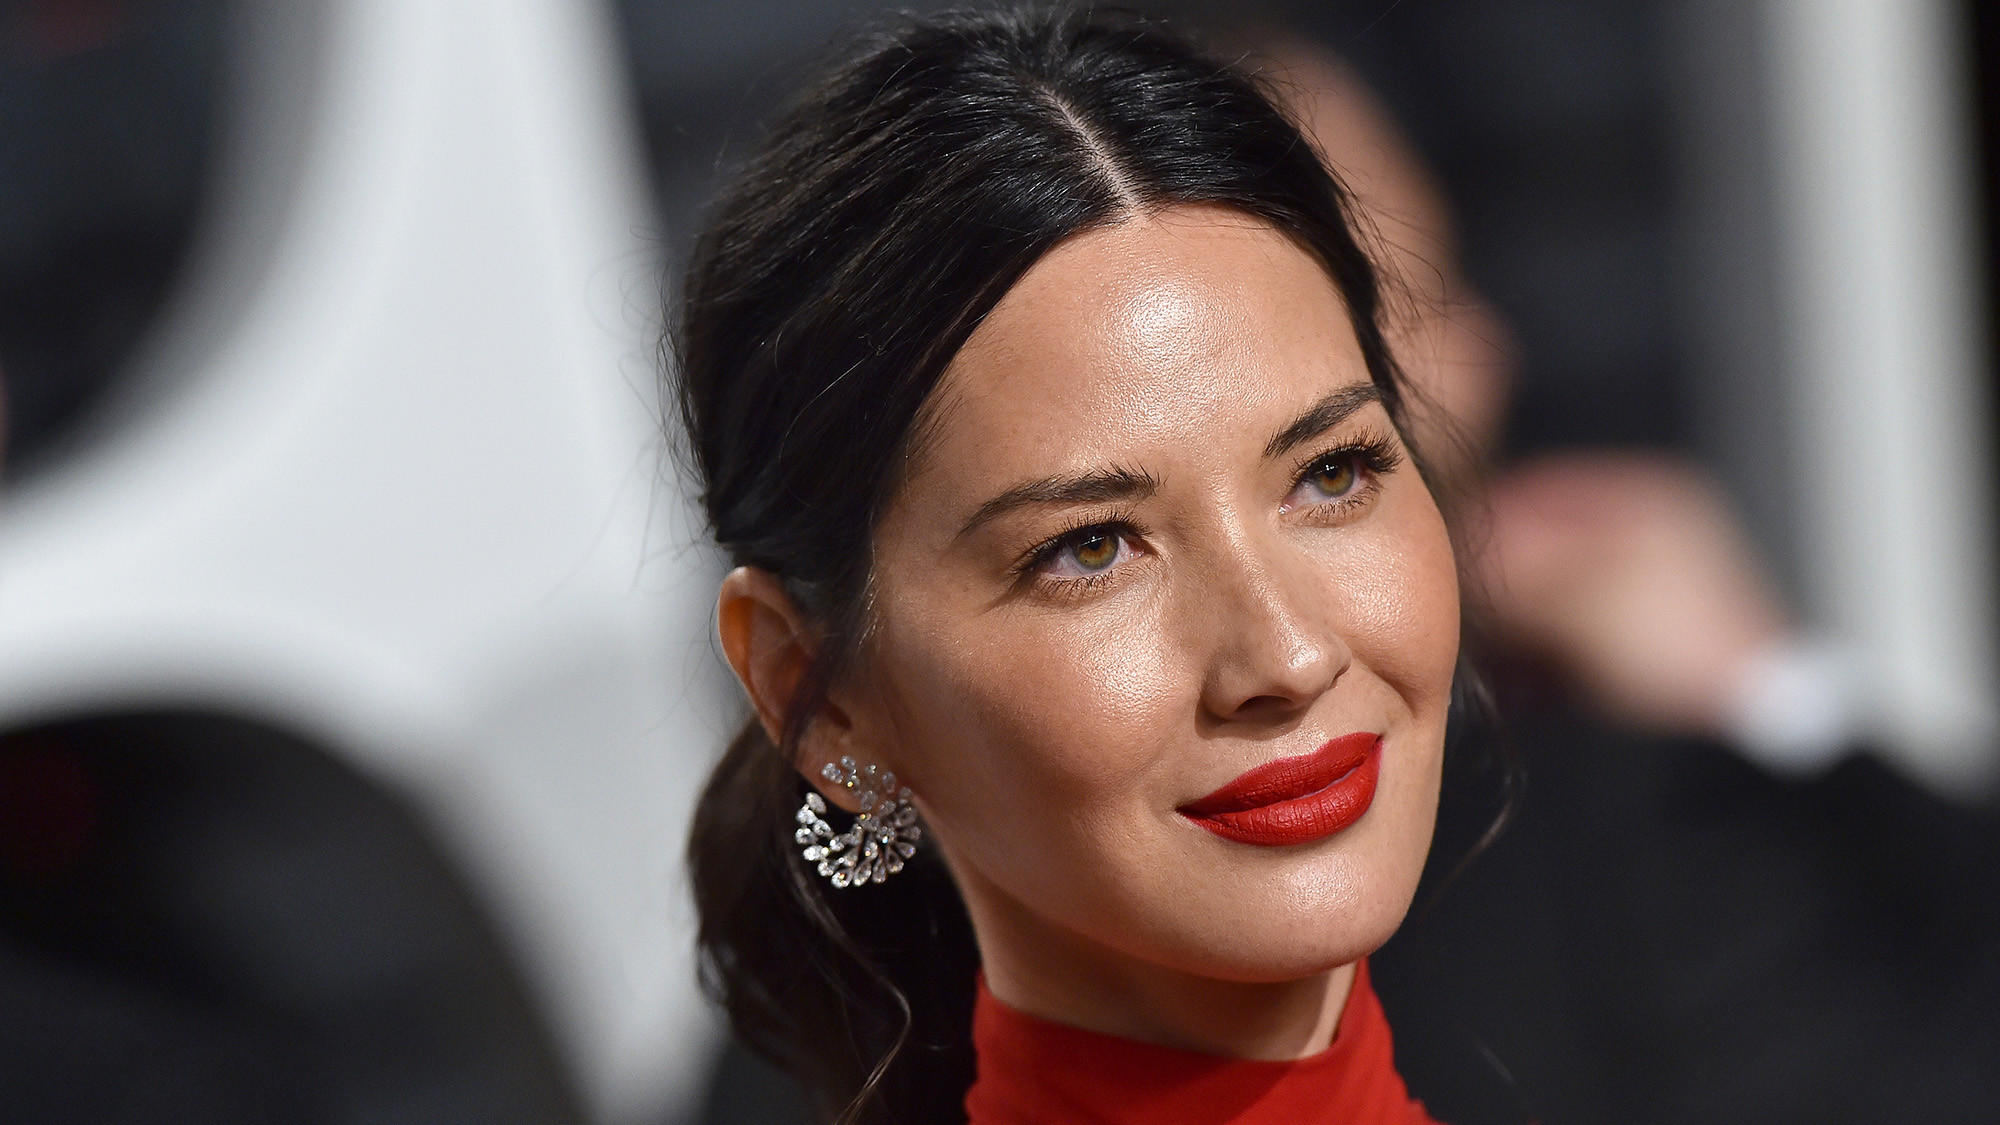 Actress Olivia Munn arrives at the 2017 Vanity Fair Oscar Party in February.